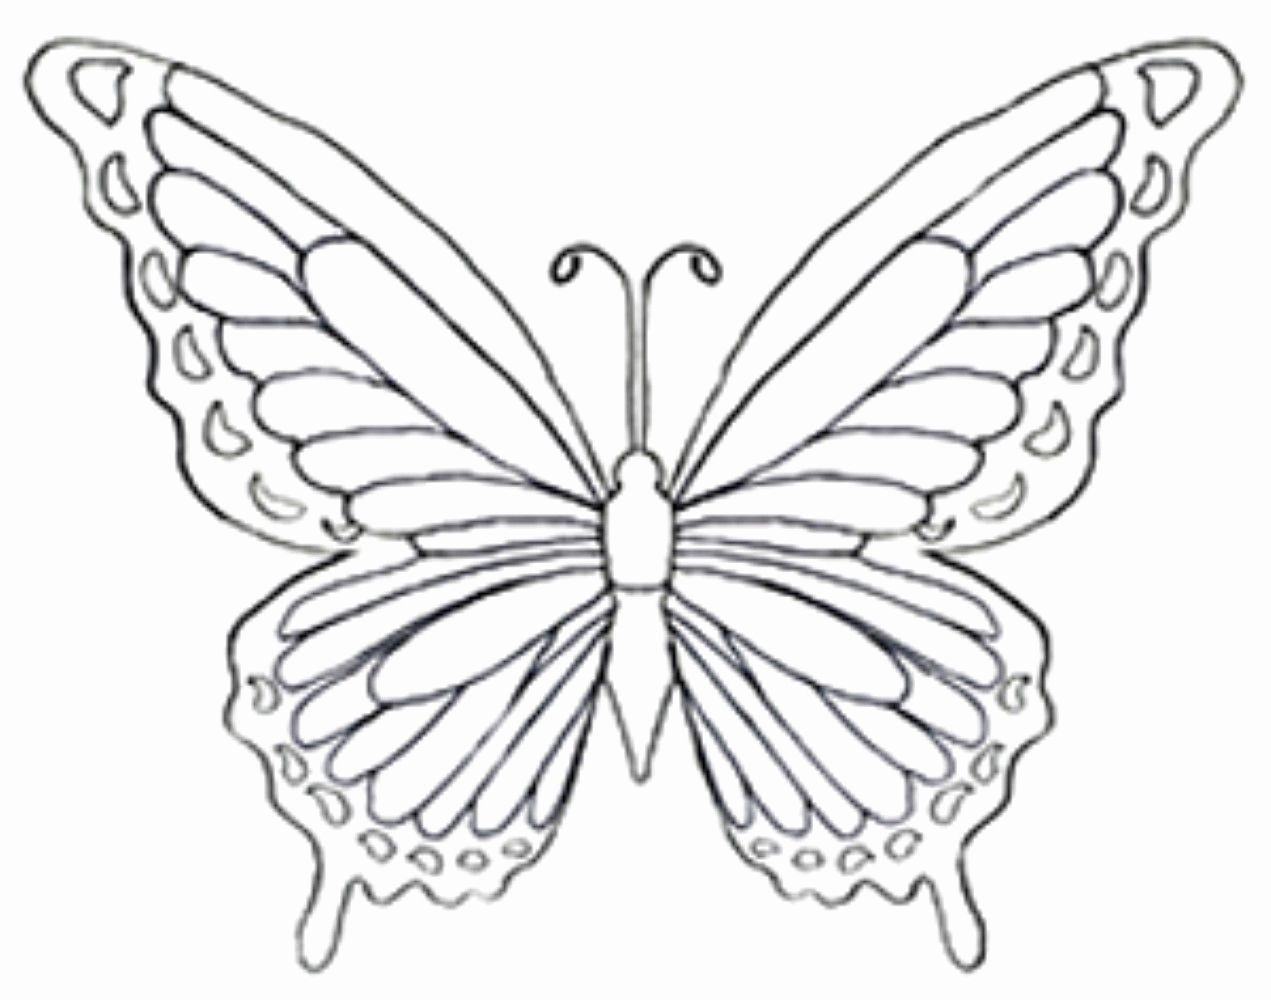 Free Printable Butterfly Coloring Pages For Kids Butterfly Clip Art Butterfly Printable Butterfly Coloring Page [ 1200 x 1200 Pixel ]